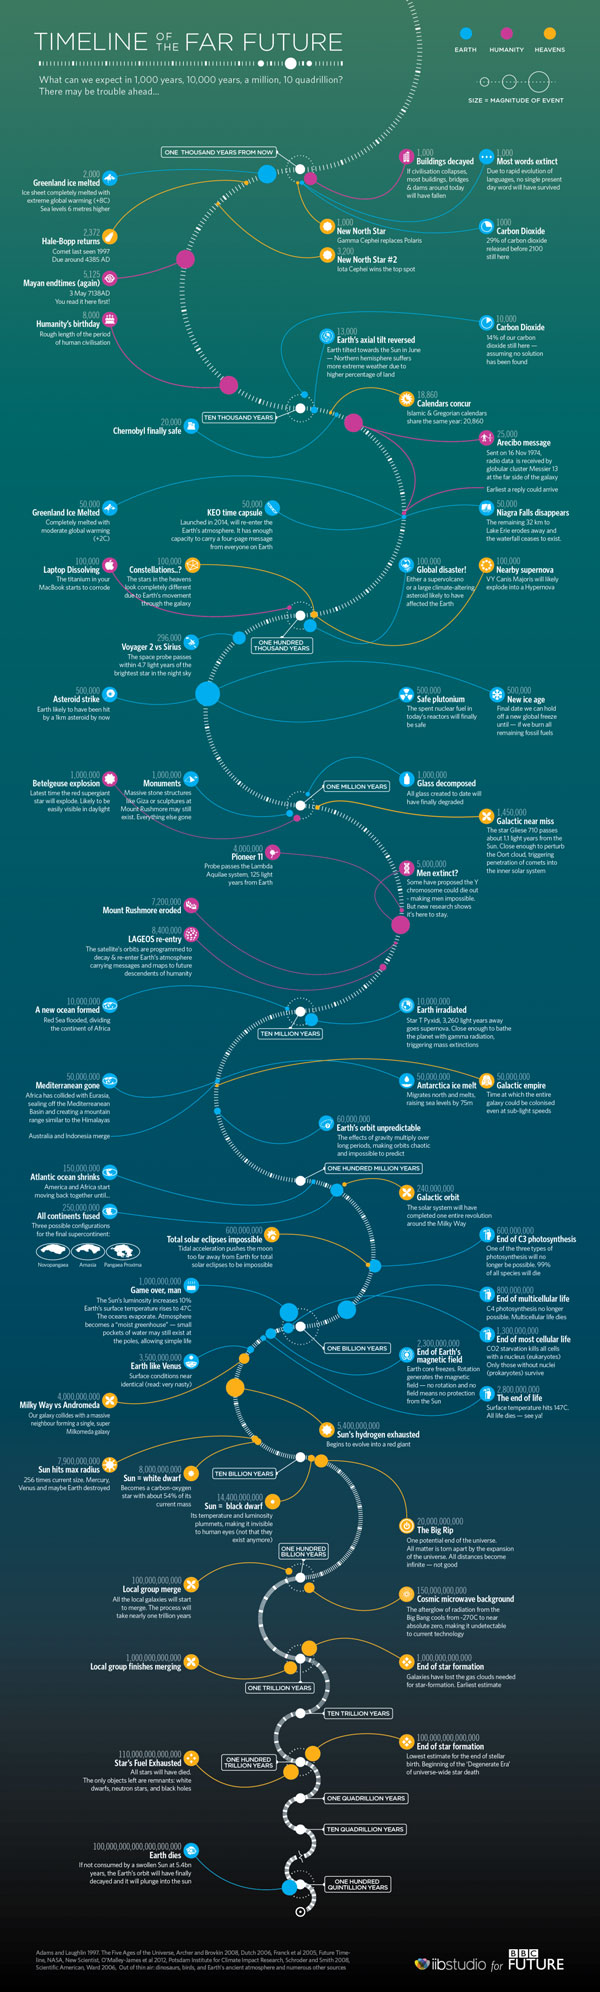 timeline-of-the-far-future